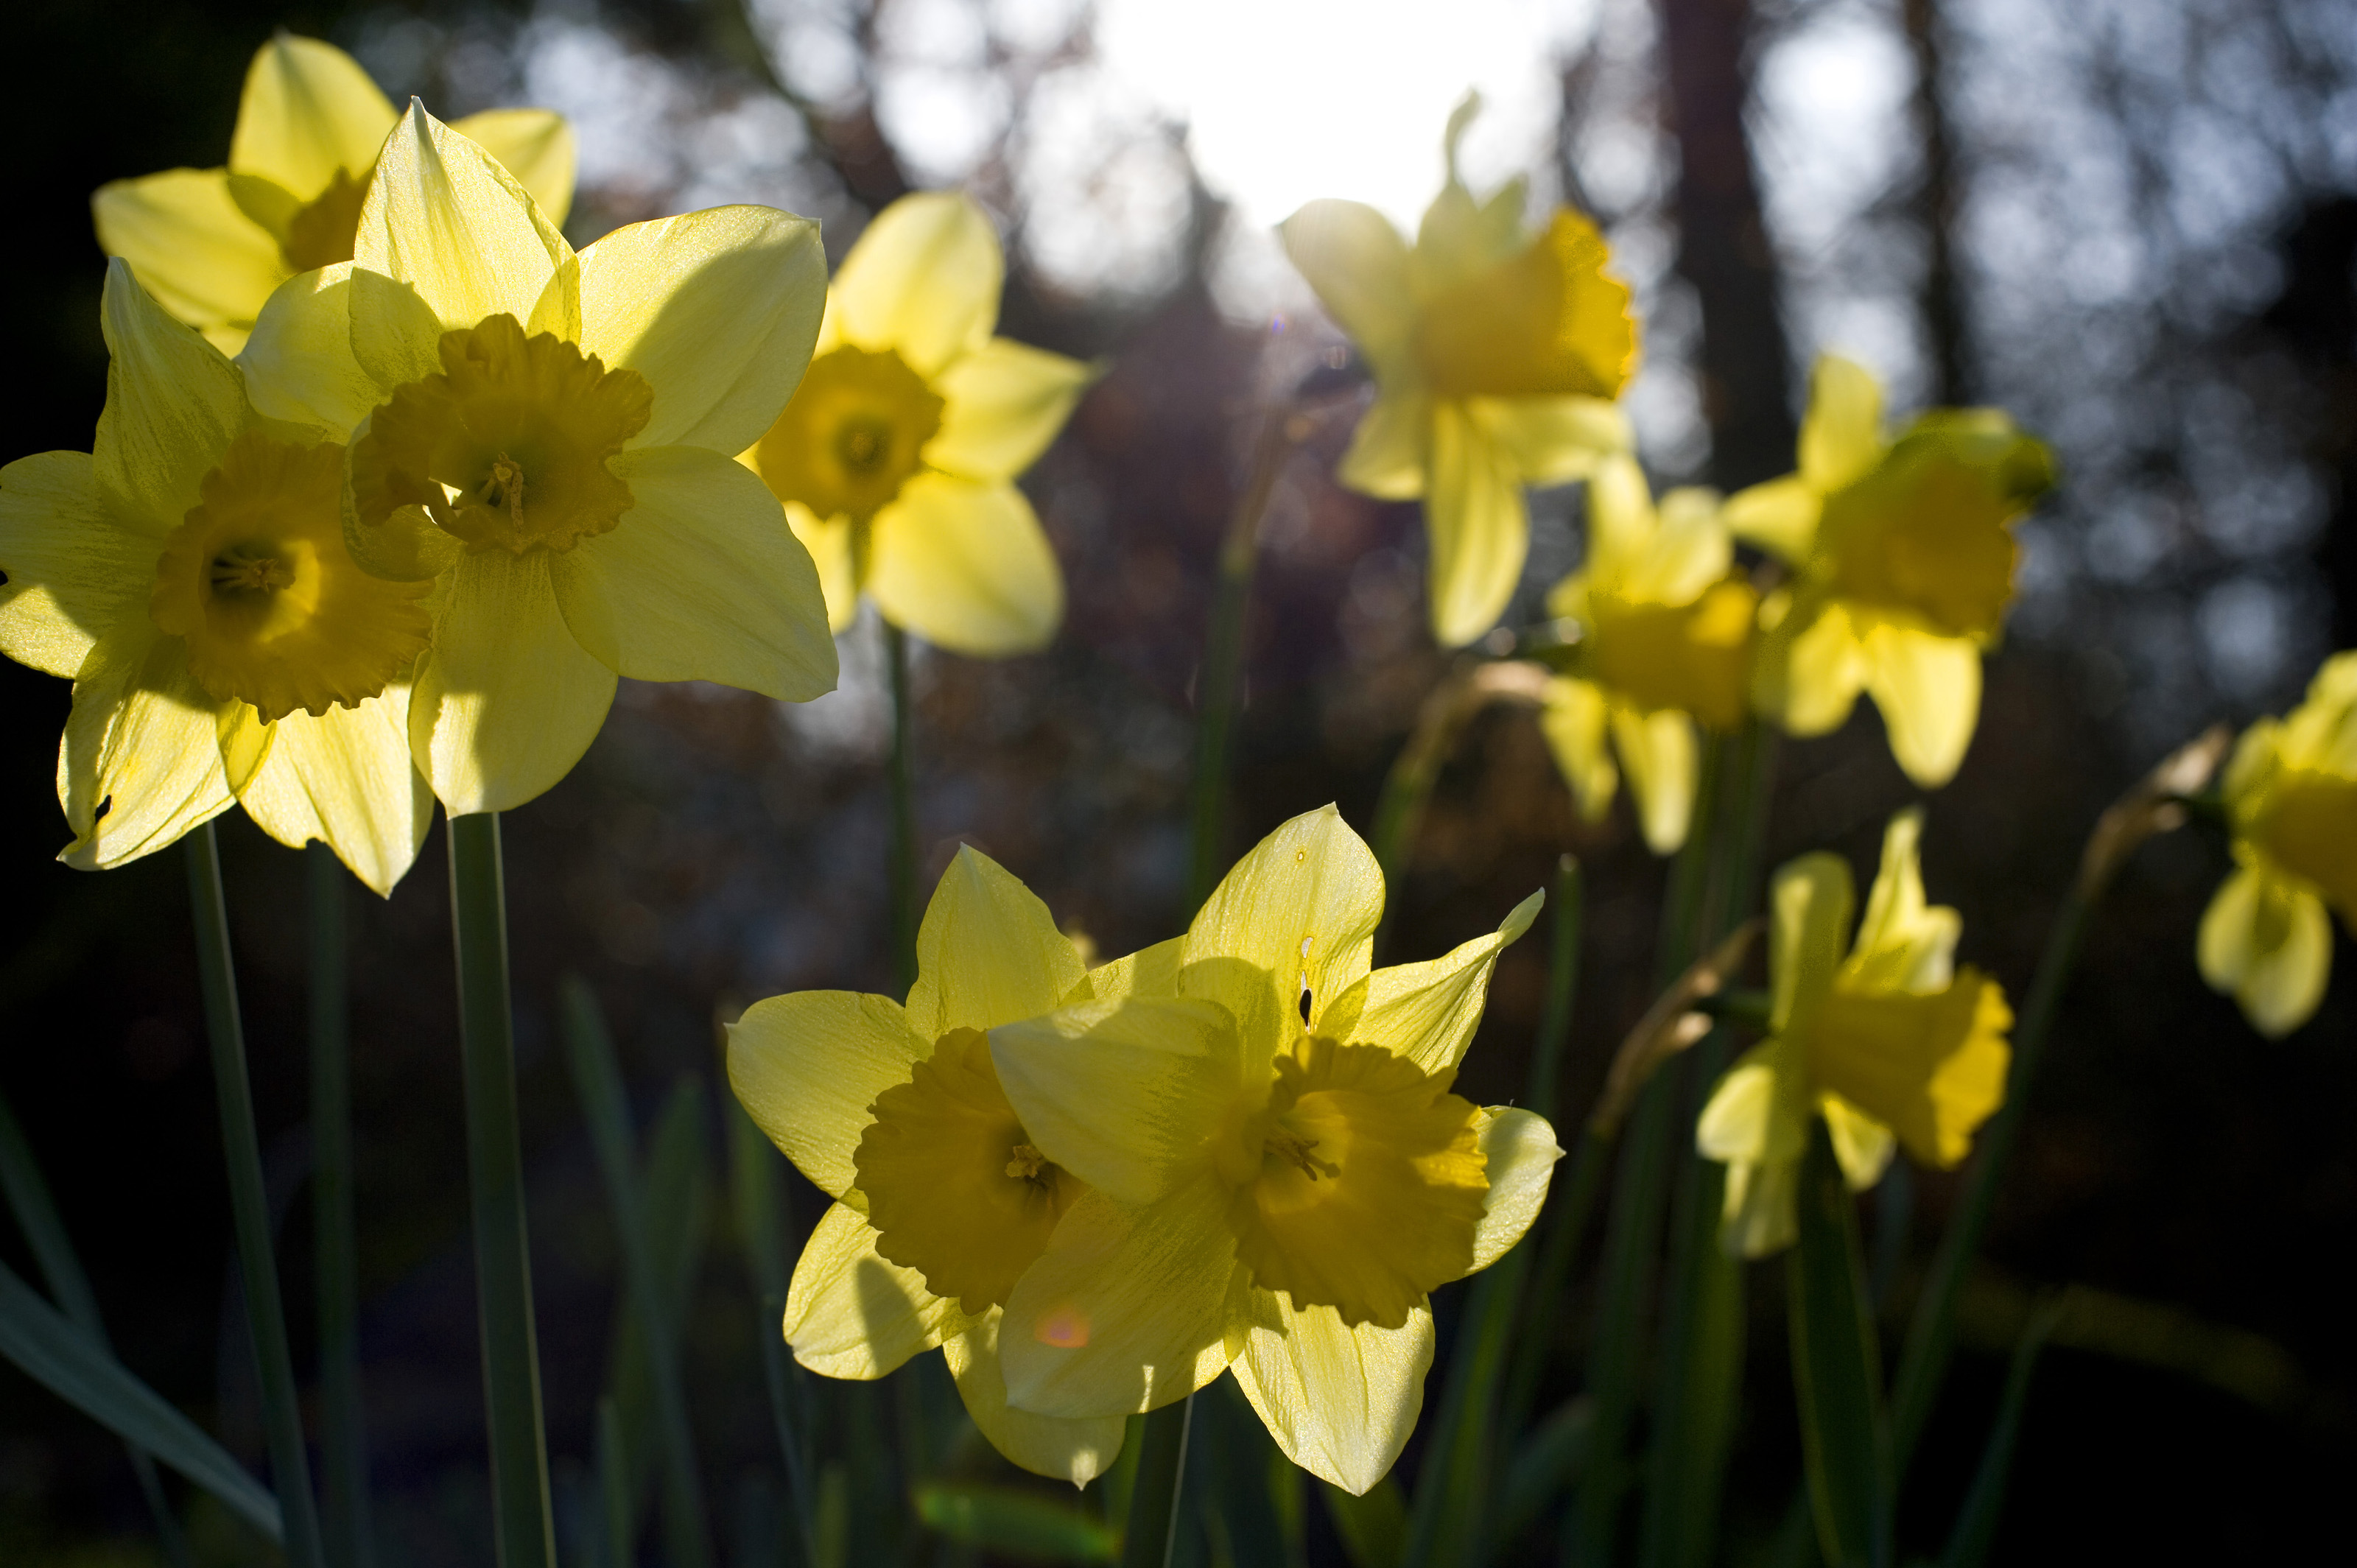 Backlit yellow daffodils-4236 | Stockarch Free Stock Photos